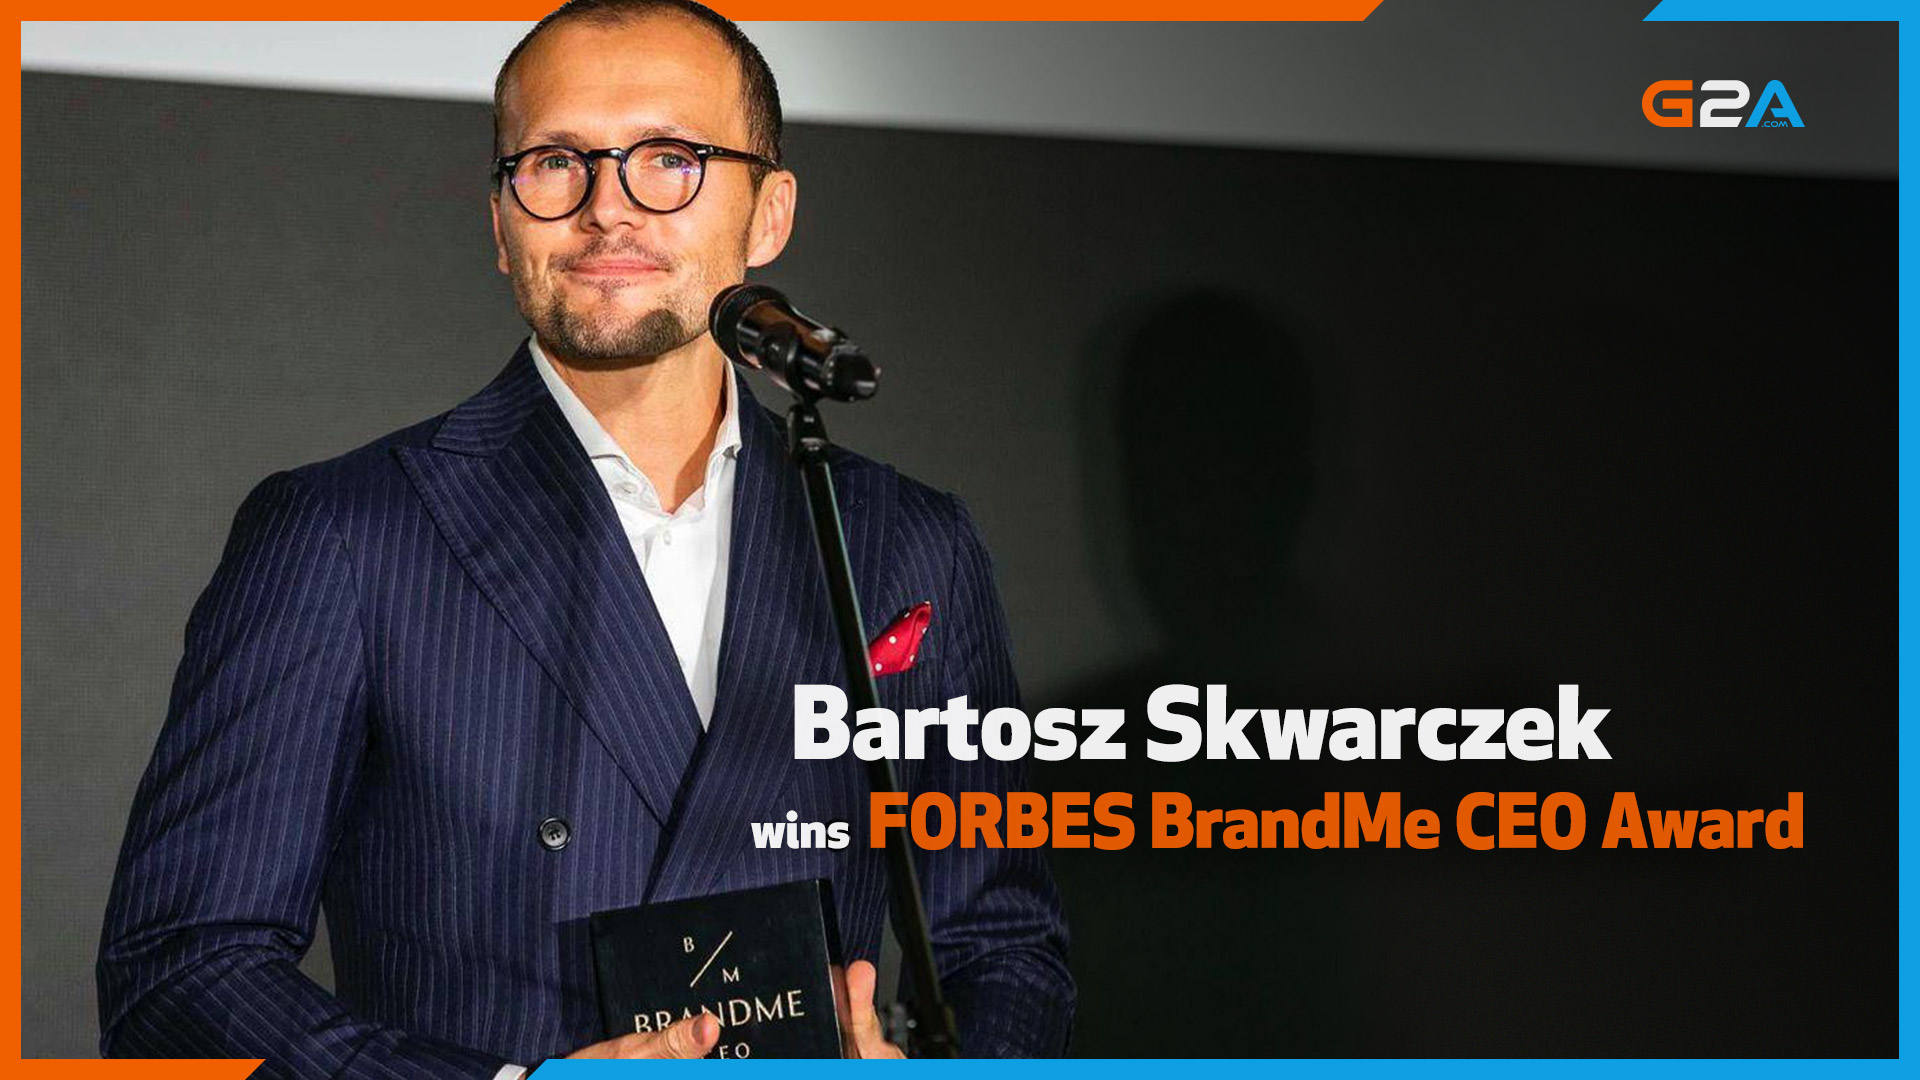 G2A CEO Bartosz Skwarczek wins major leadership award from FORBES